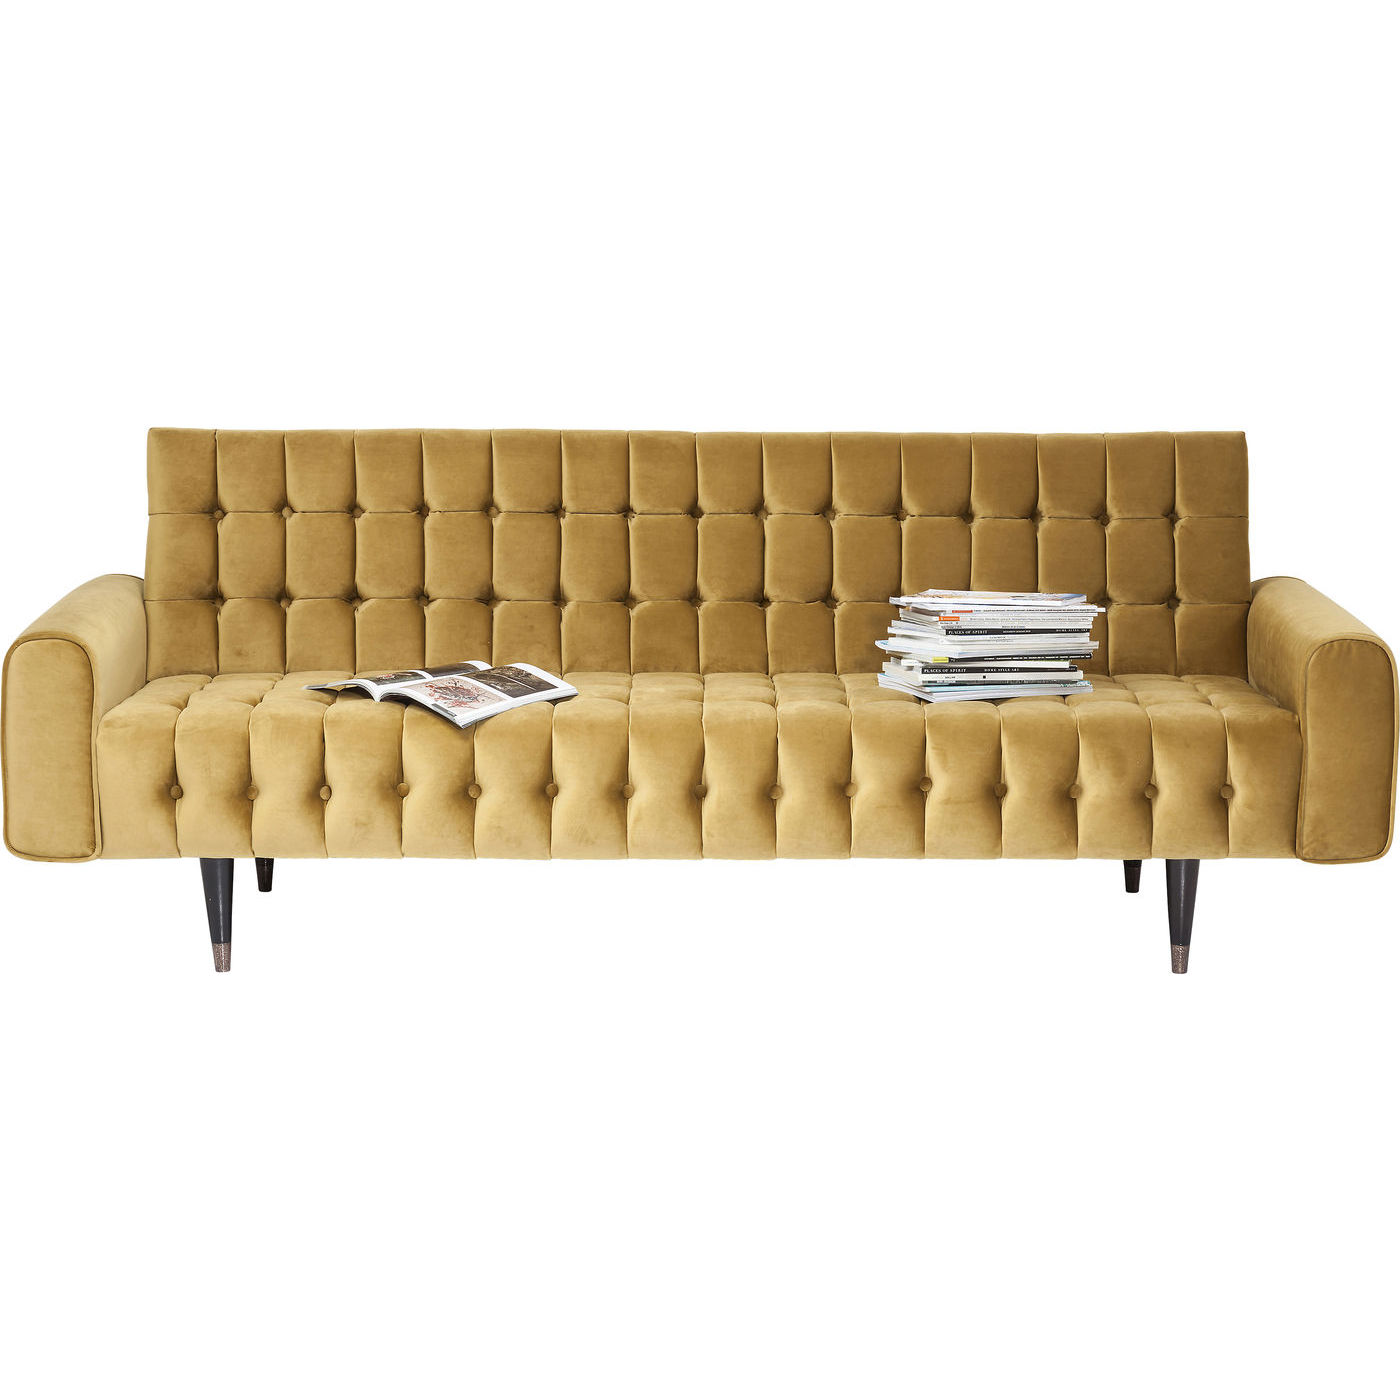 Kare design milchbar honey 3 pers. sofa